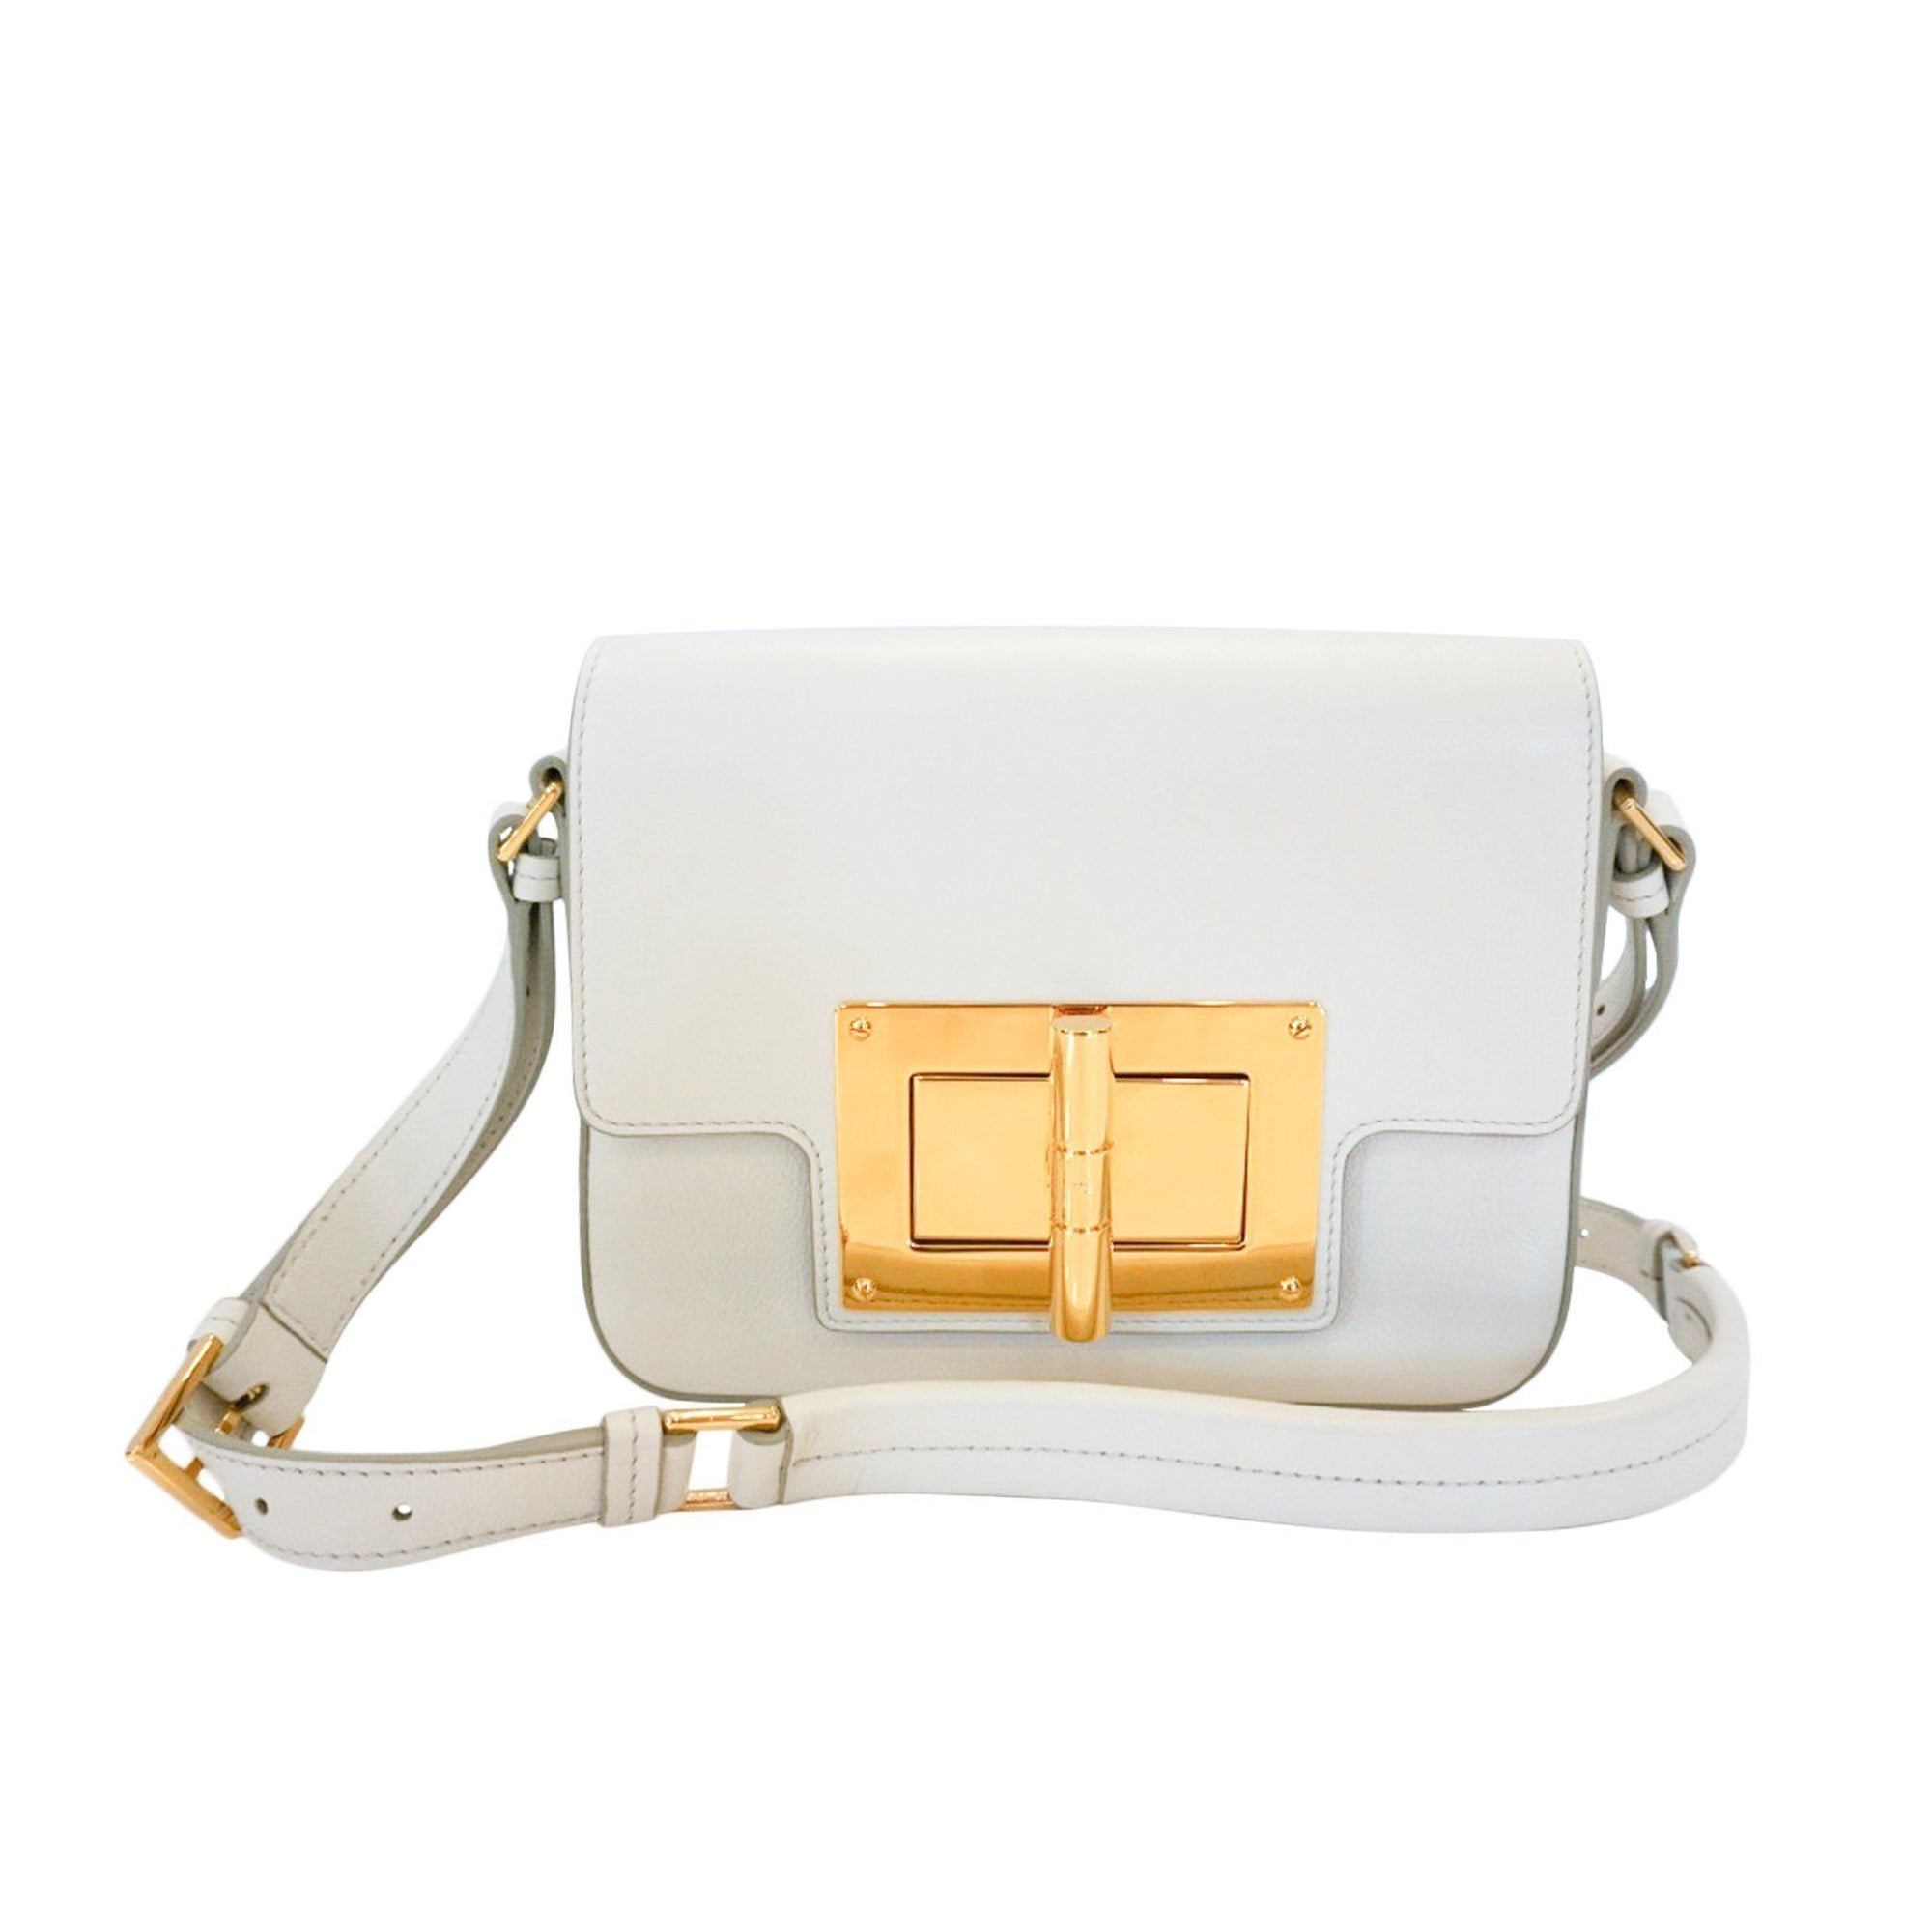 Tom Ford  Classic Day Medium Natalia Day Bag White Leather Shoulder Bag L0820T